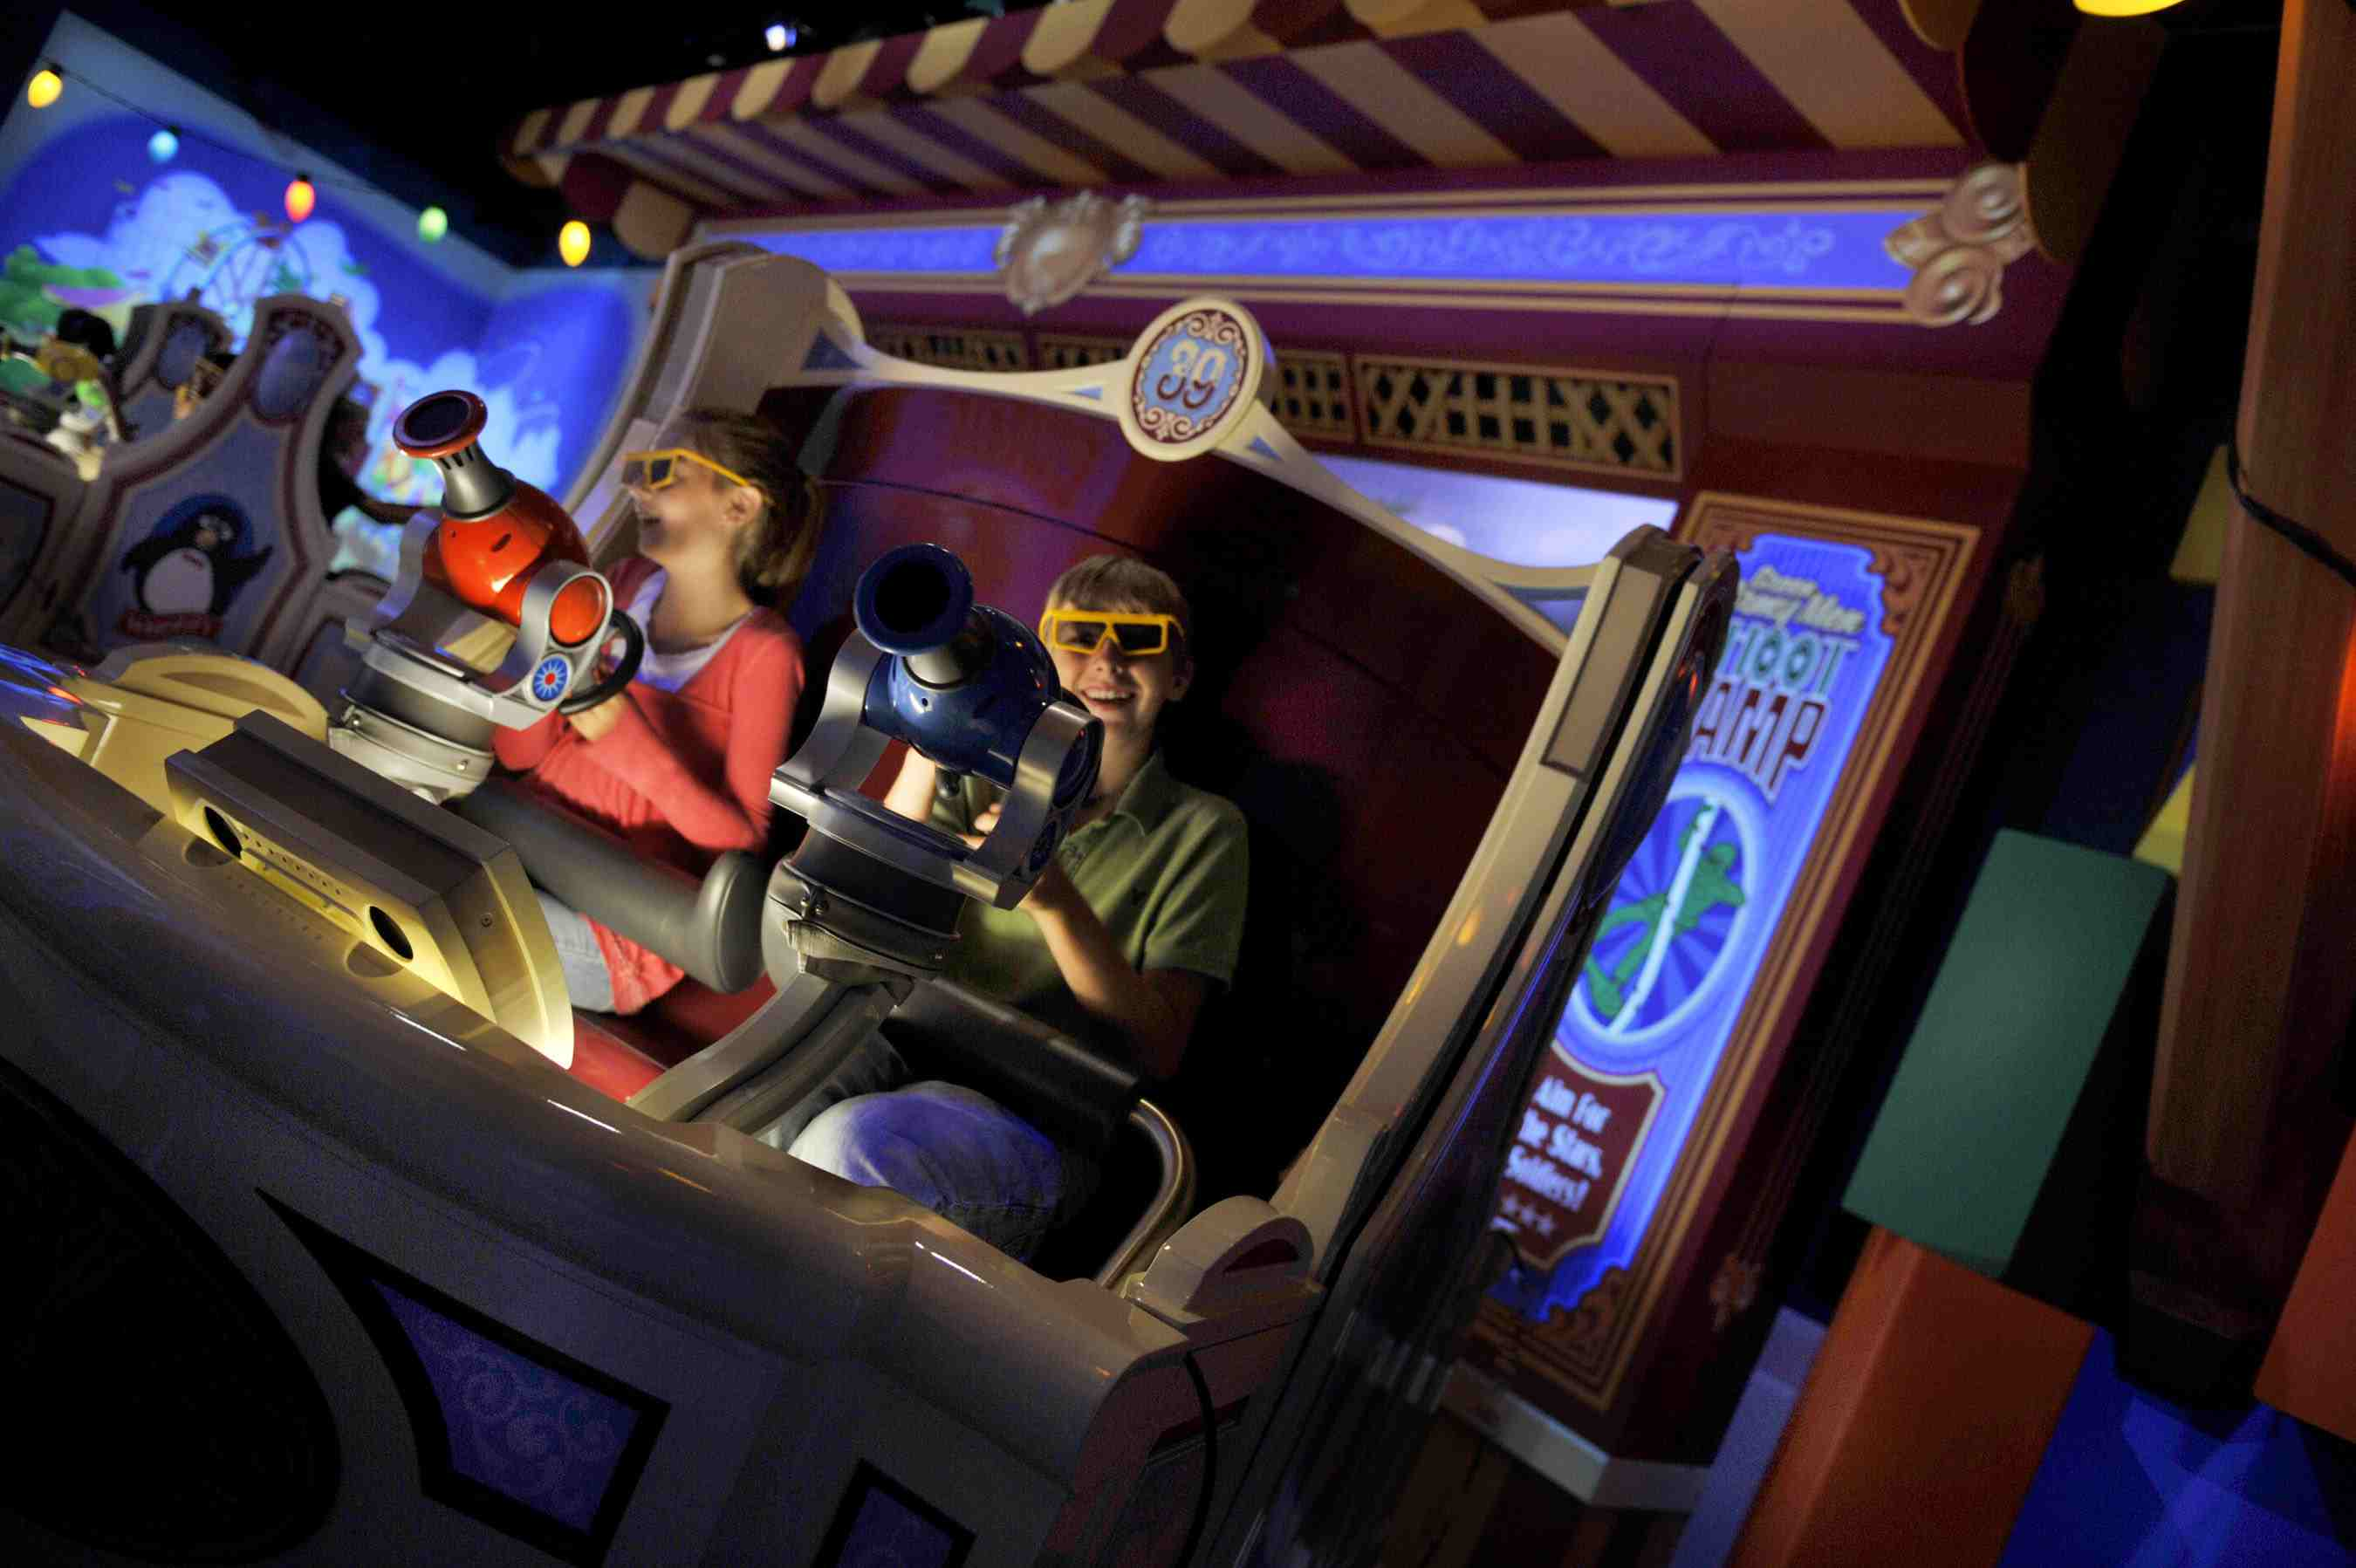 Inside Toy Story Mania with kids shooting at targets to gain points.